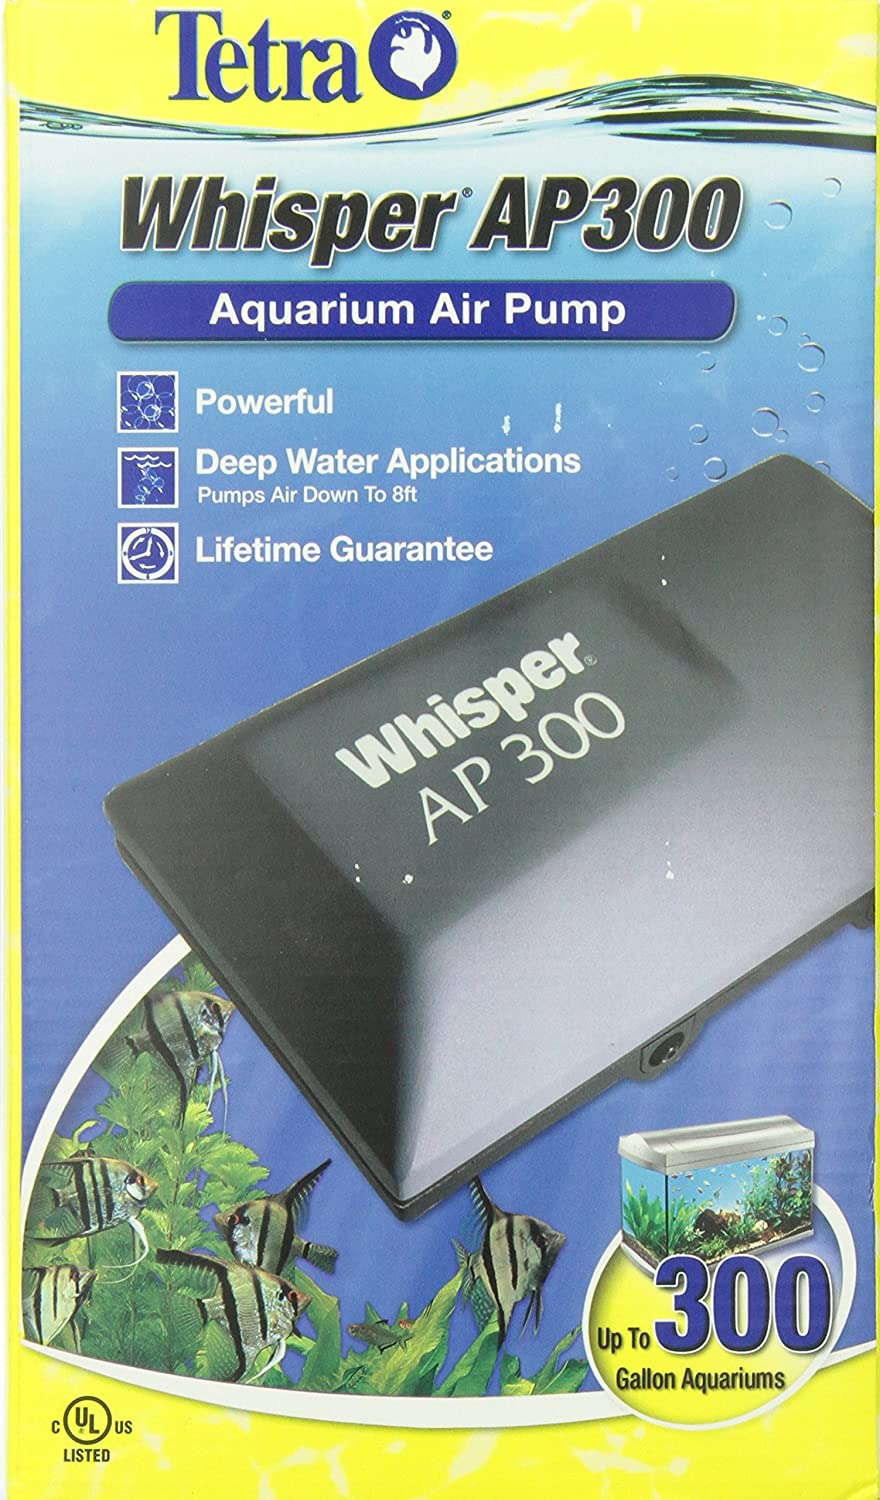 91Zm5Fak 4L._SL1500_ amazon com tetra 26075 whisper aquarium air pump ap300, up to  at honlapkeszites.co